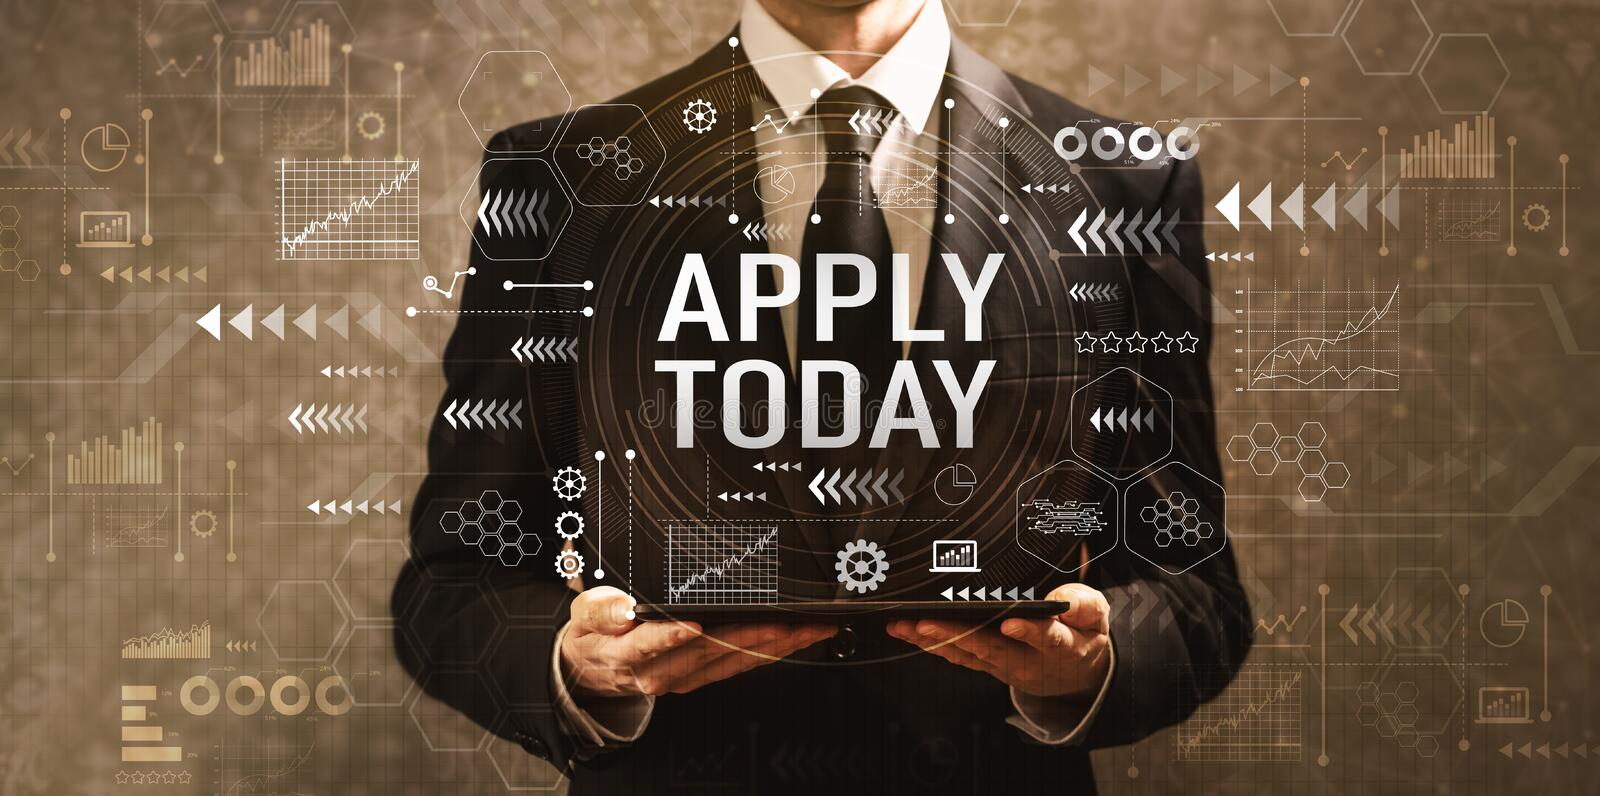 Apply today with businessman holding a tablet computer royalty free stock image